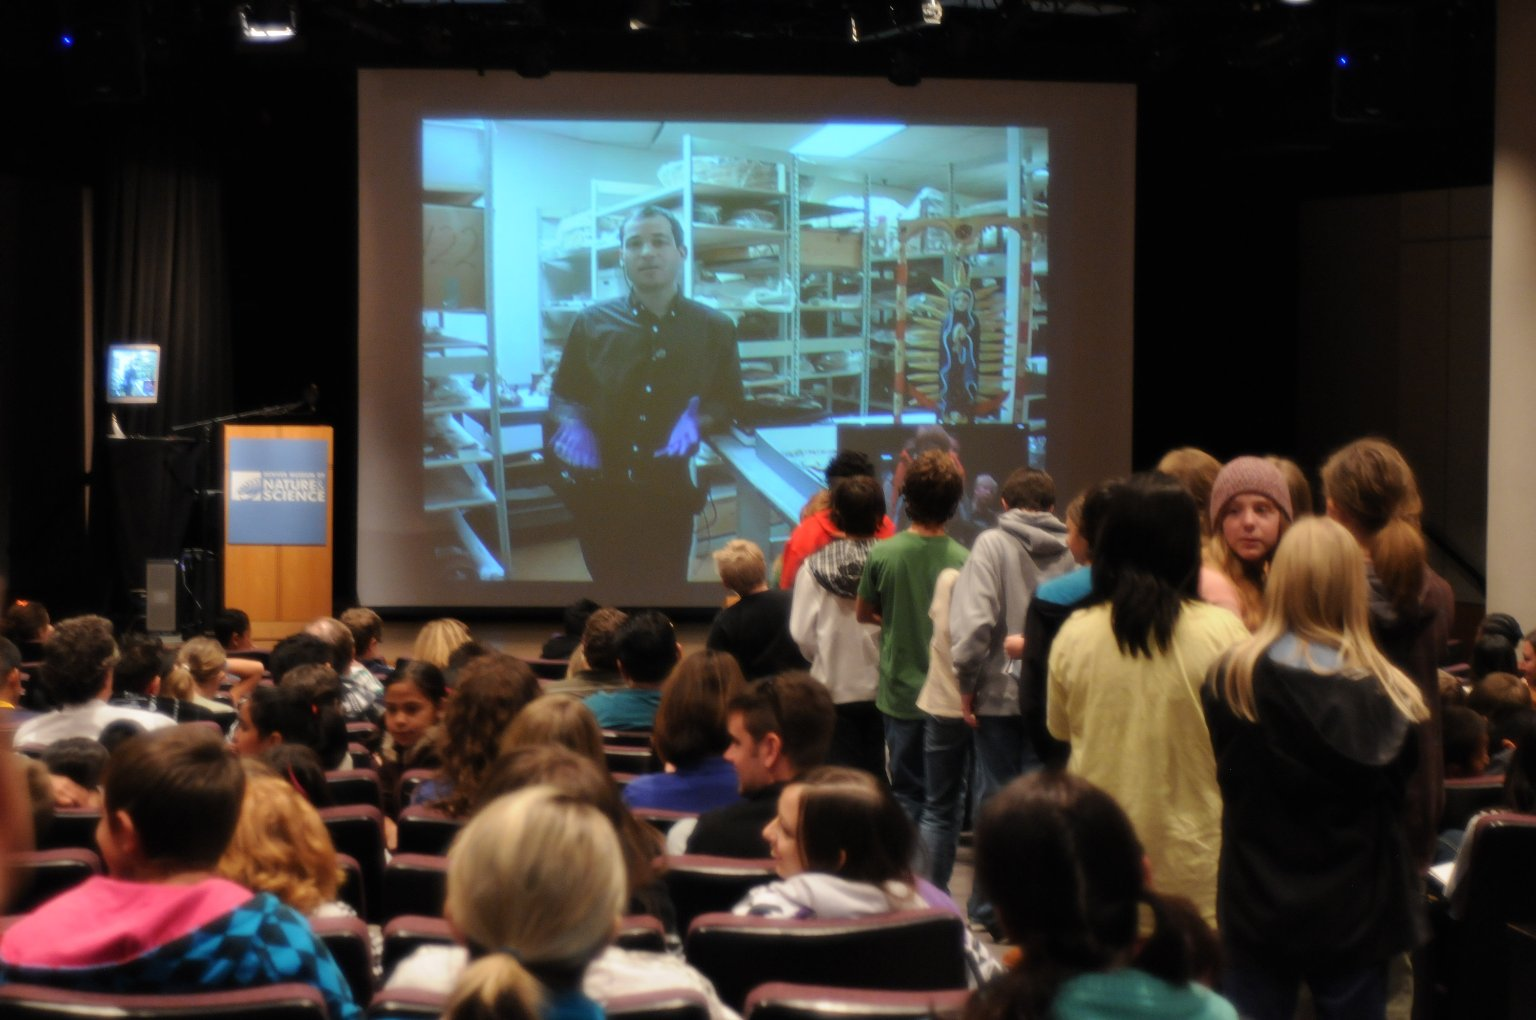 Science in Action with Chip Colwell